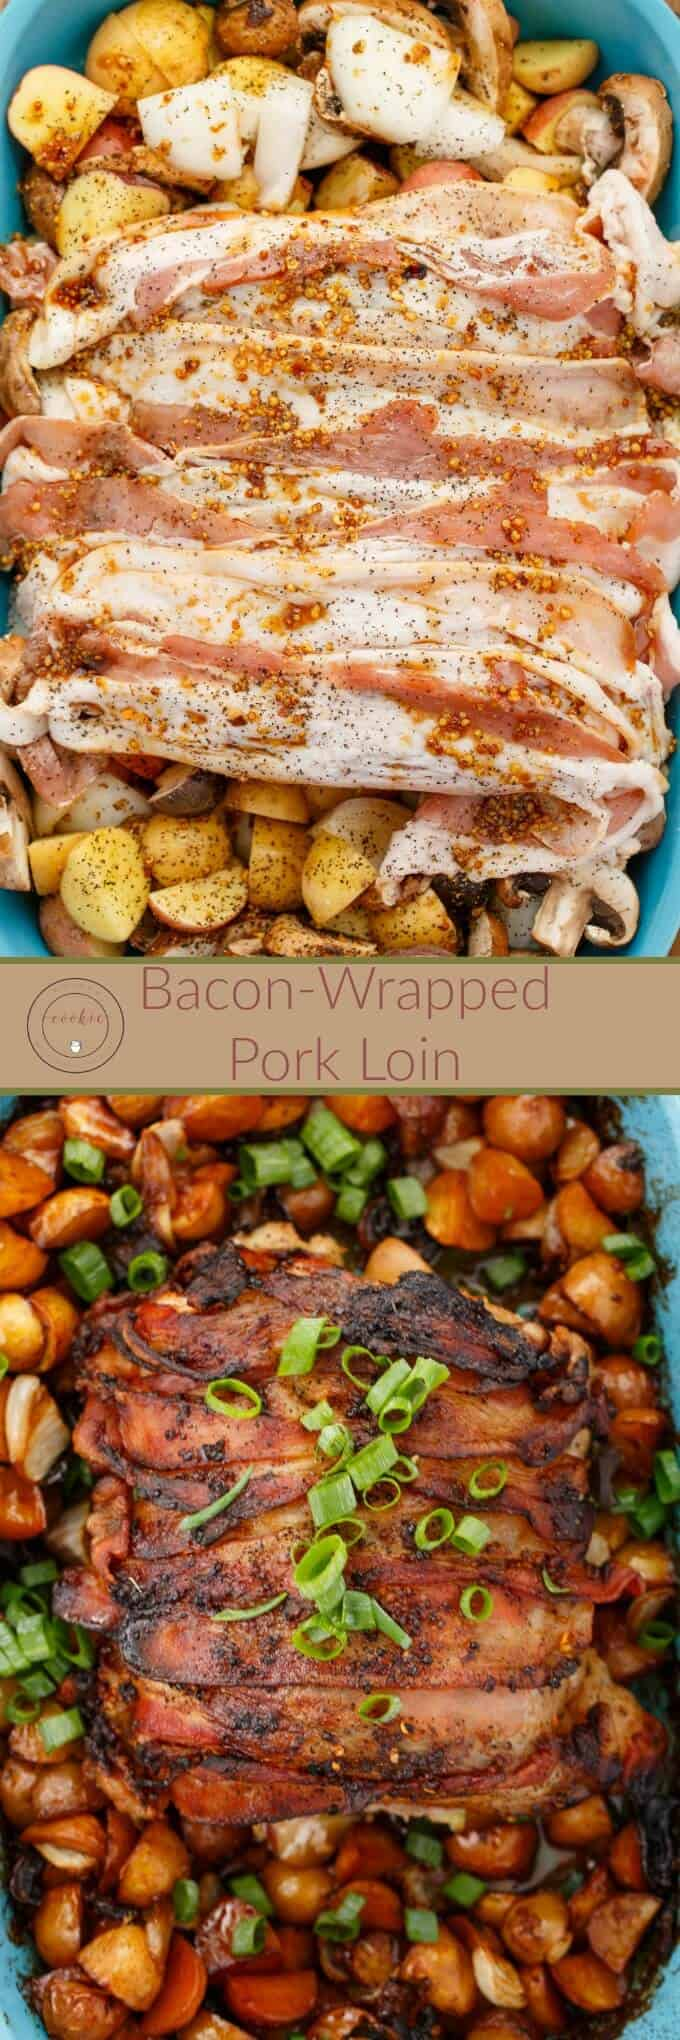 bacon-wrapped-pork-loin